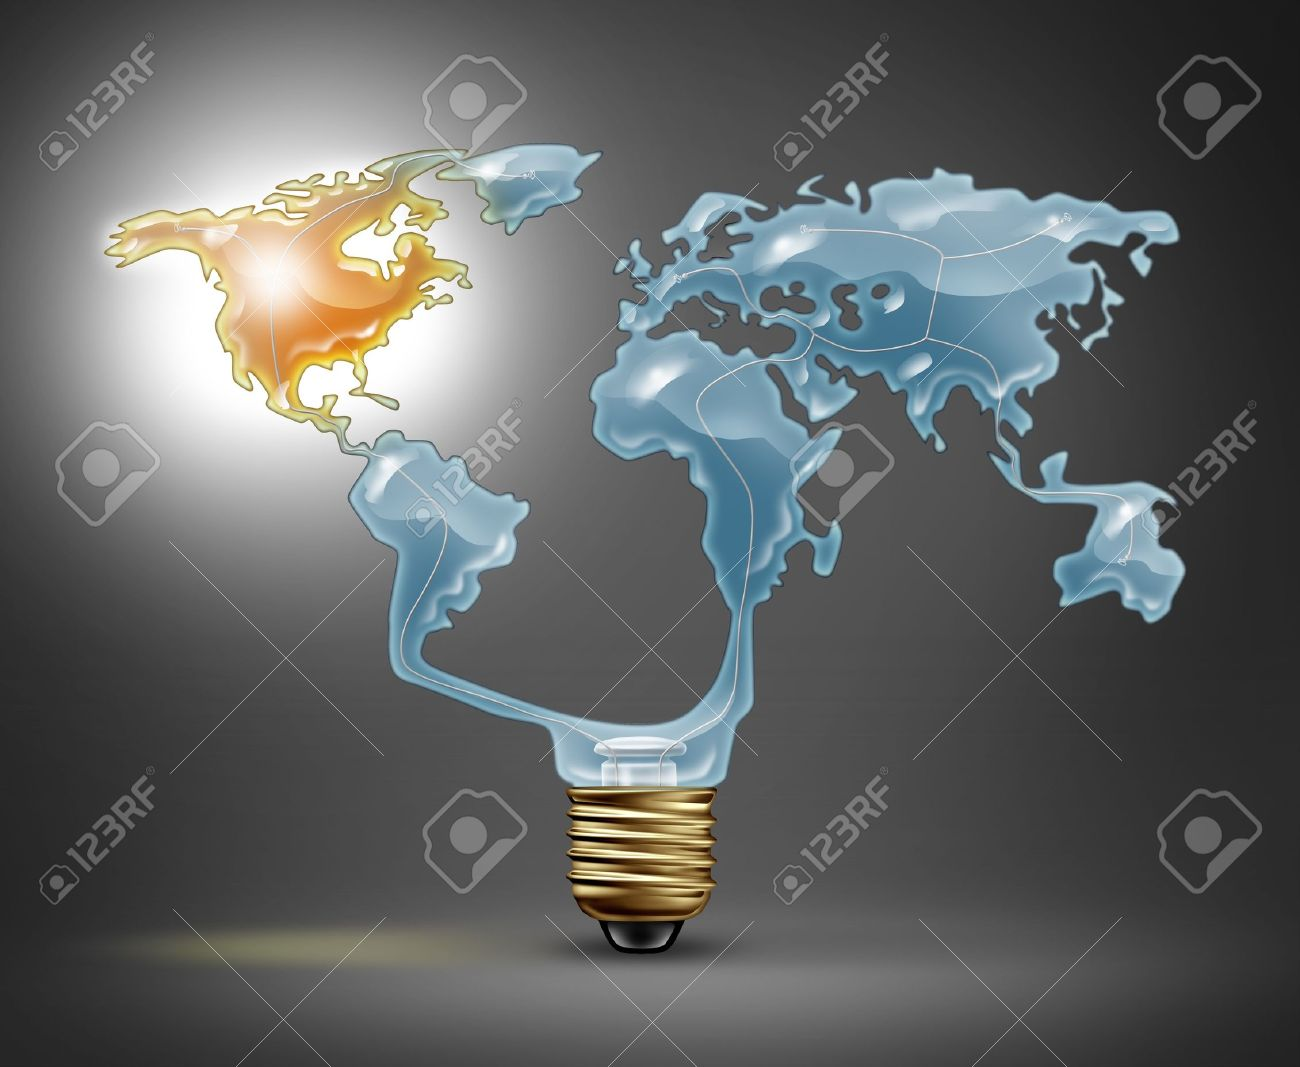 North america recovery with a light bulb in the shape of the world north america recovery with a light bulb in the shape of the world map representing the global economy with the northern american continent illuminated with gumiabroncs Image collections